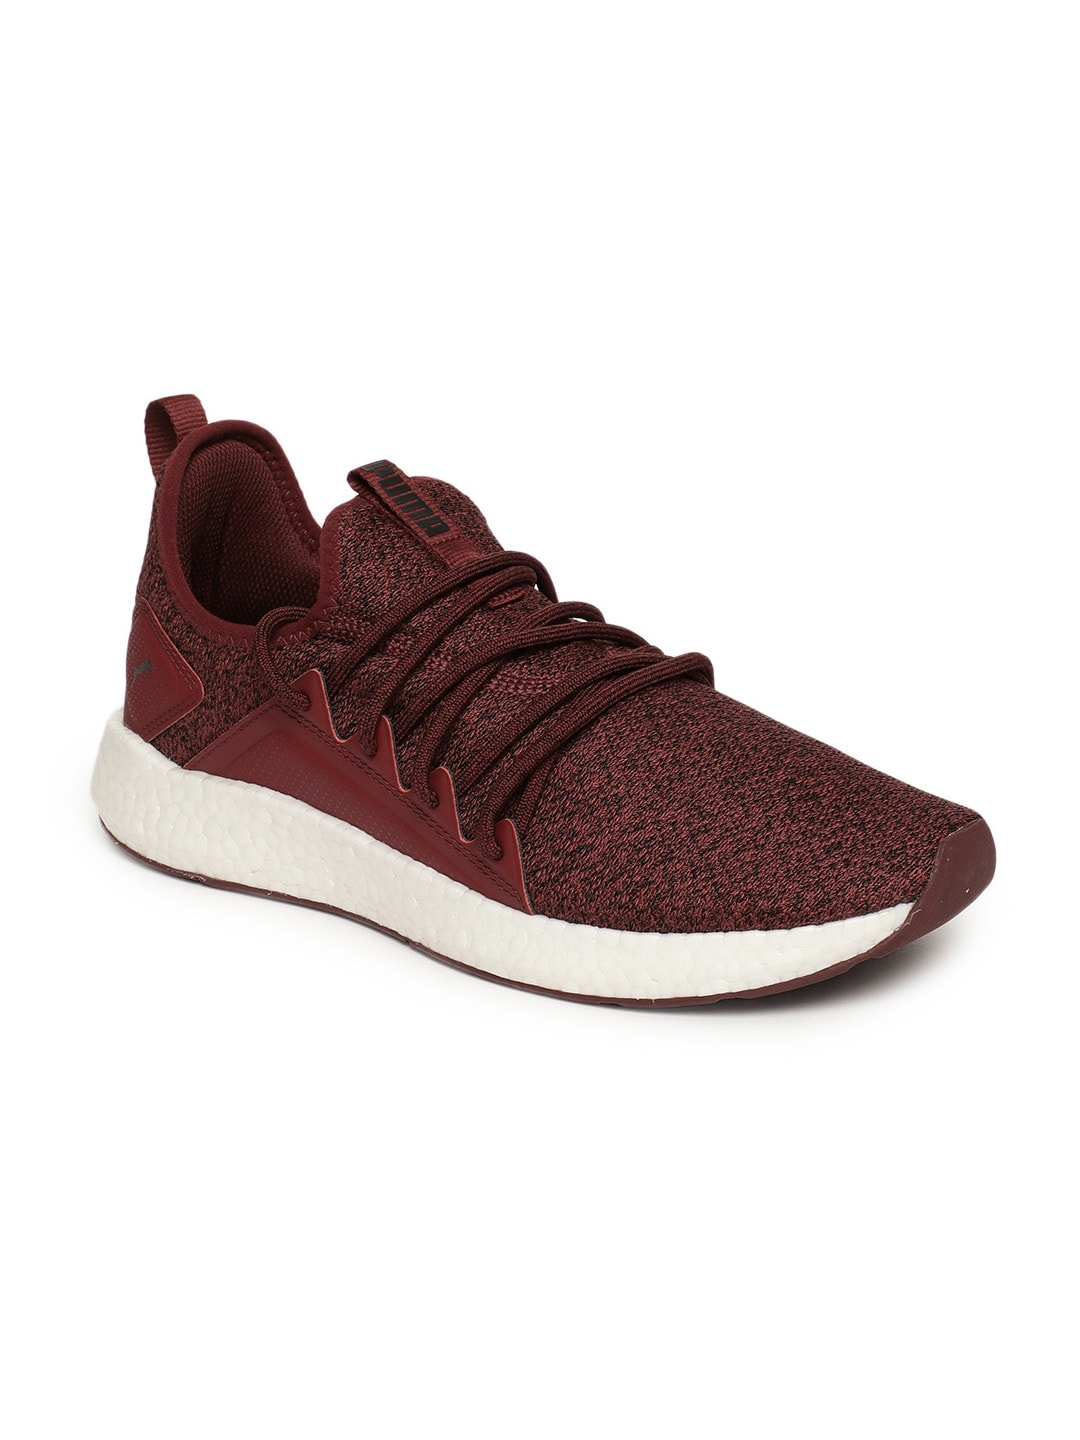 081df8b4e Puma Shoes - Buy Puma Shoes for Men   Women Online in India